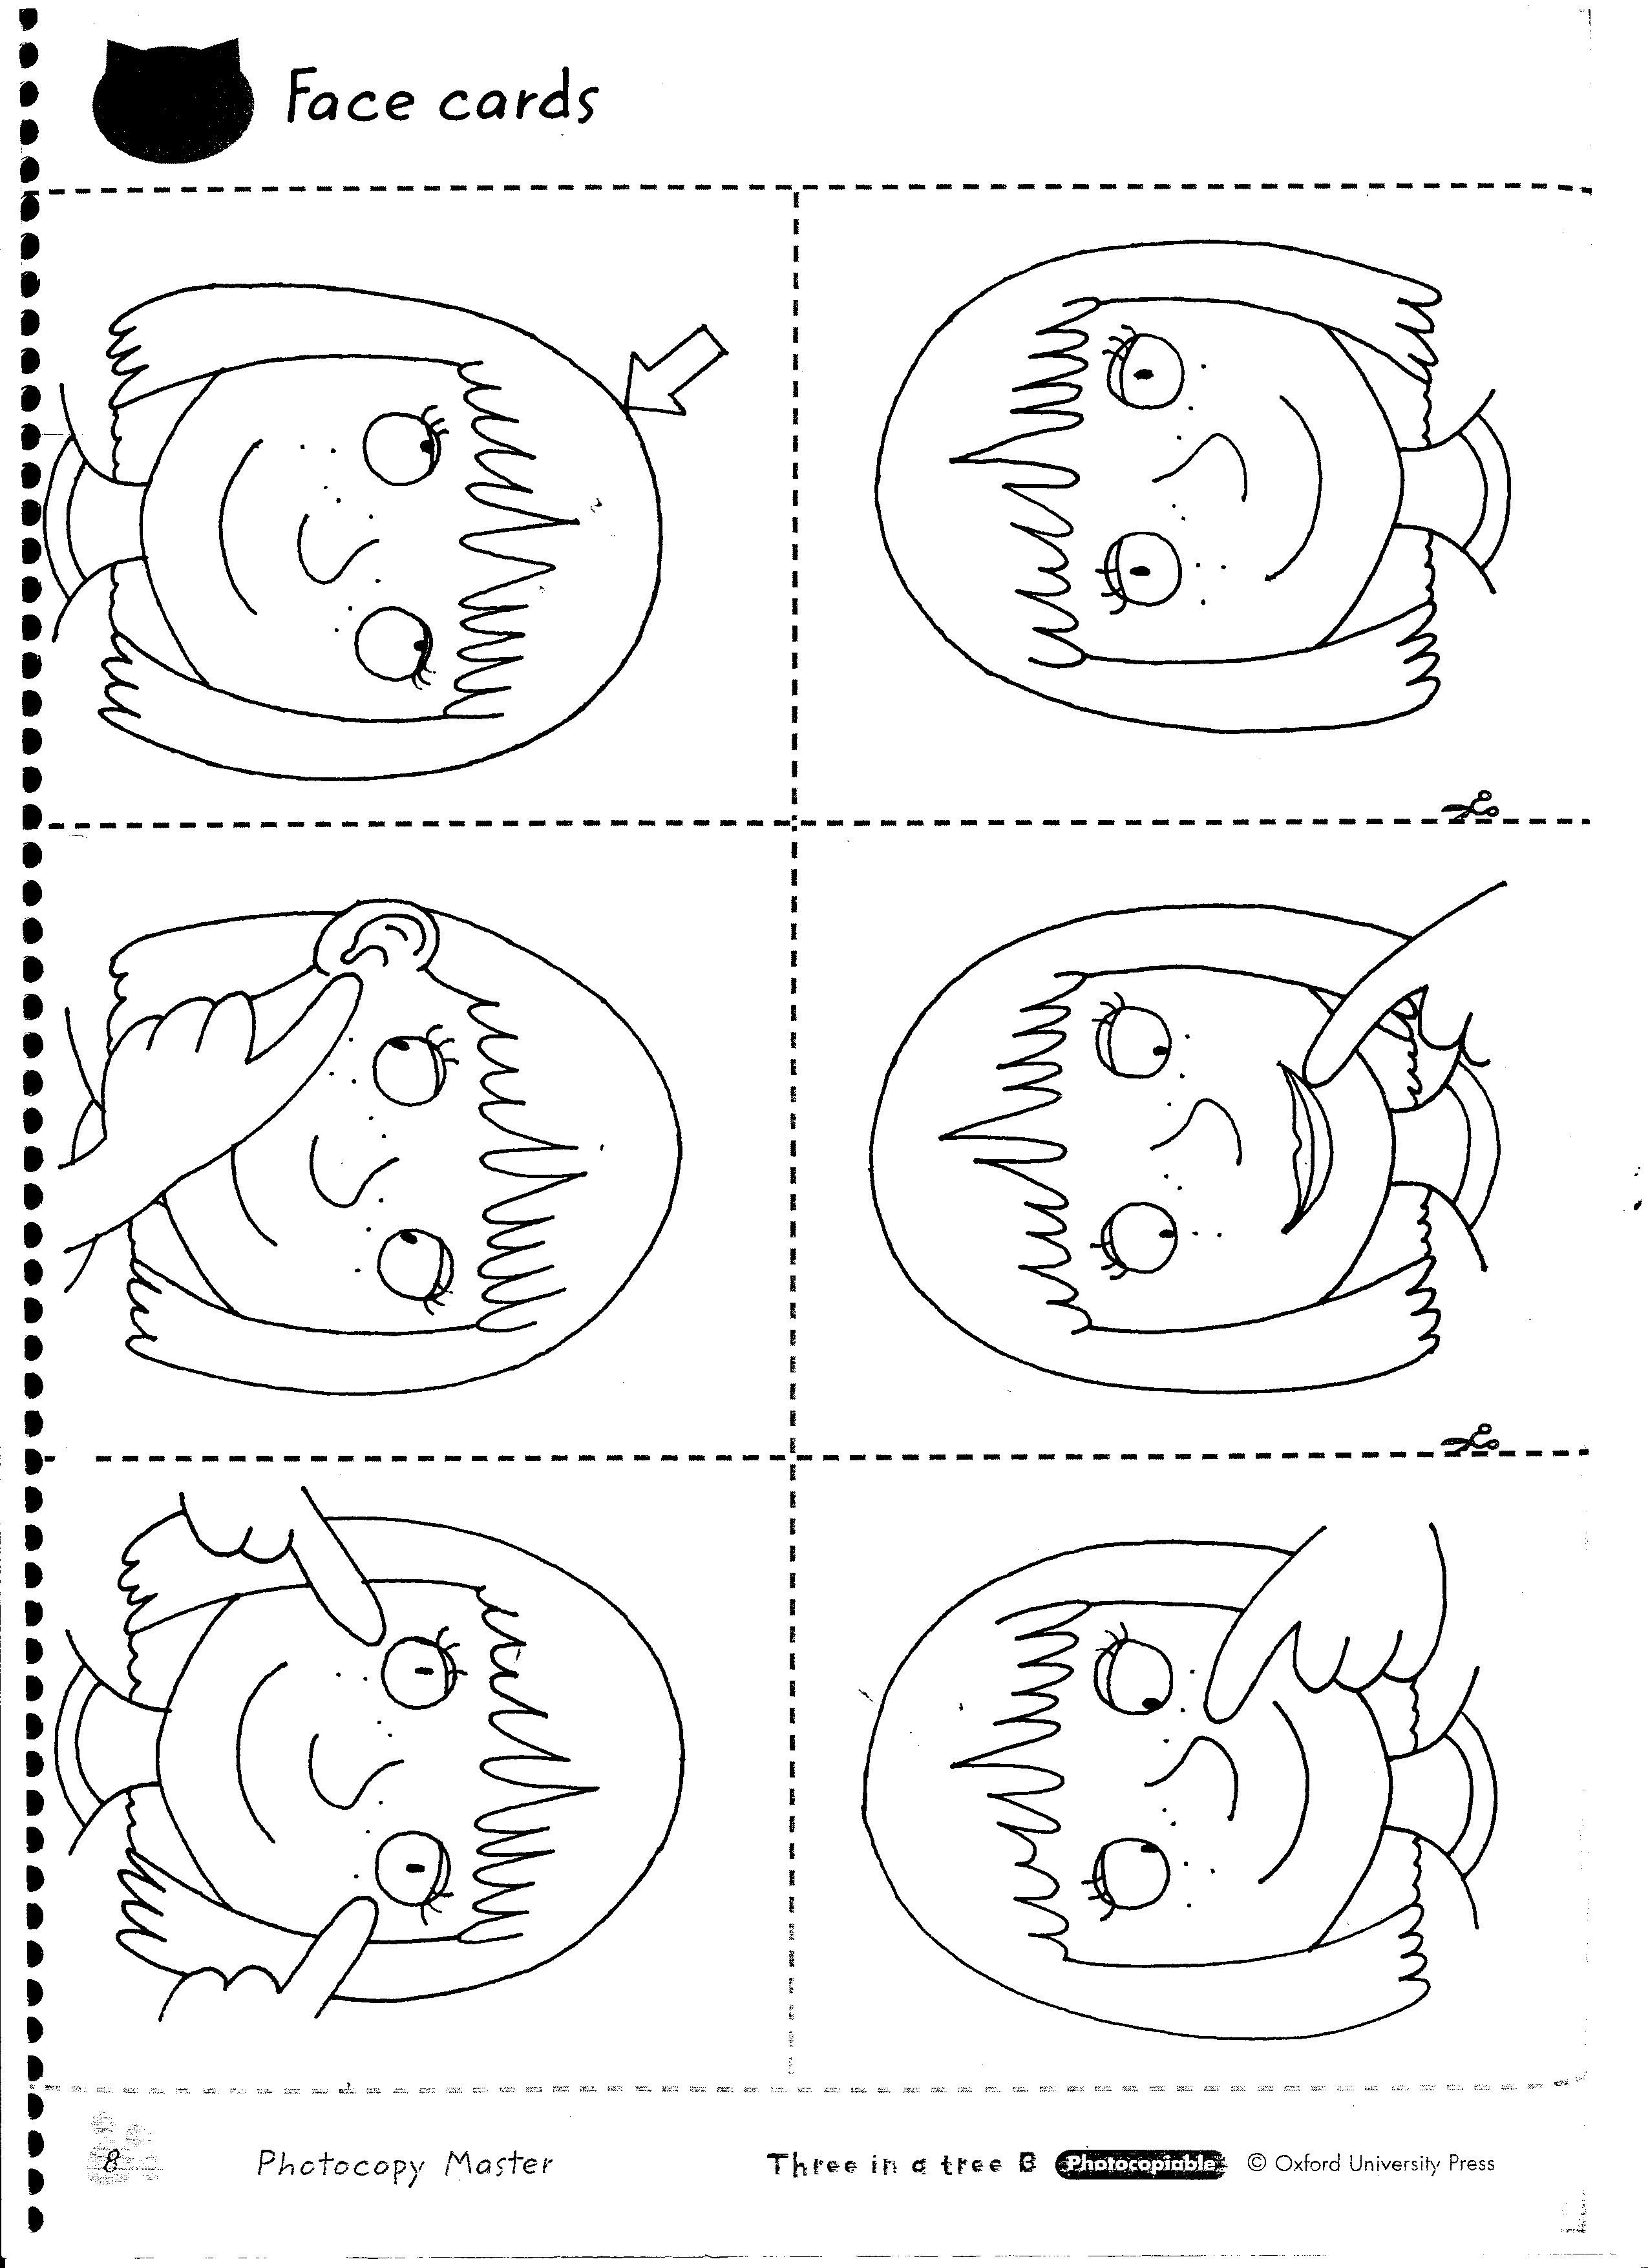 Head And Shoulders Knees And Toes Worksheet